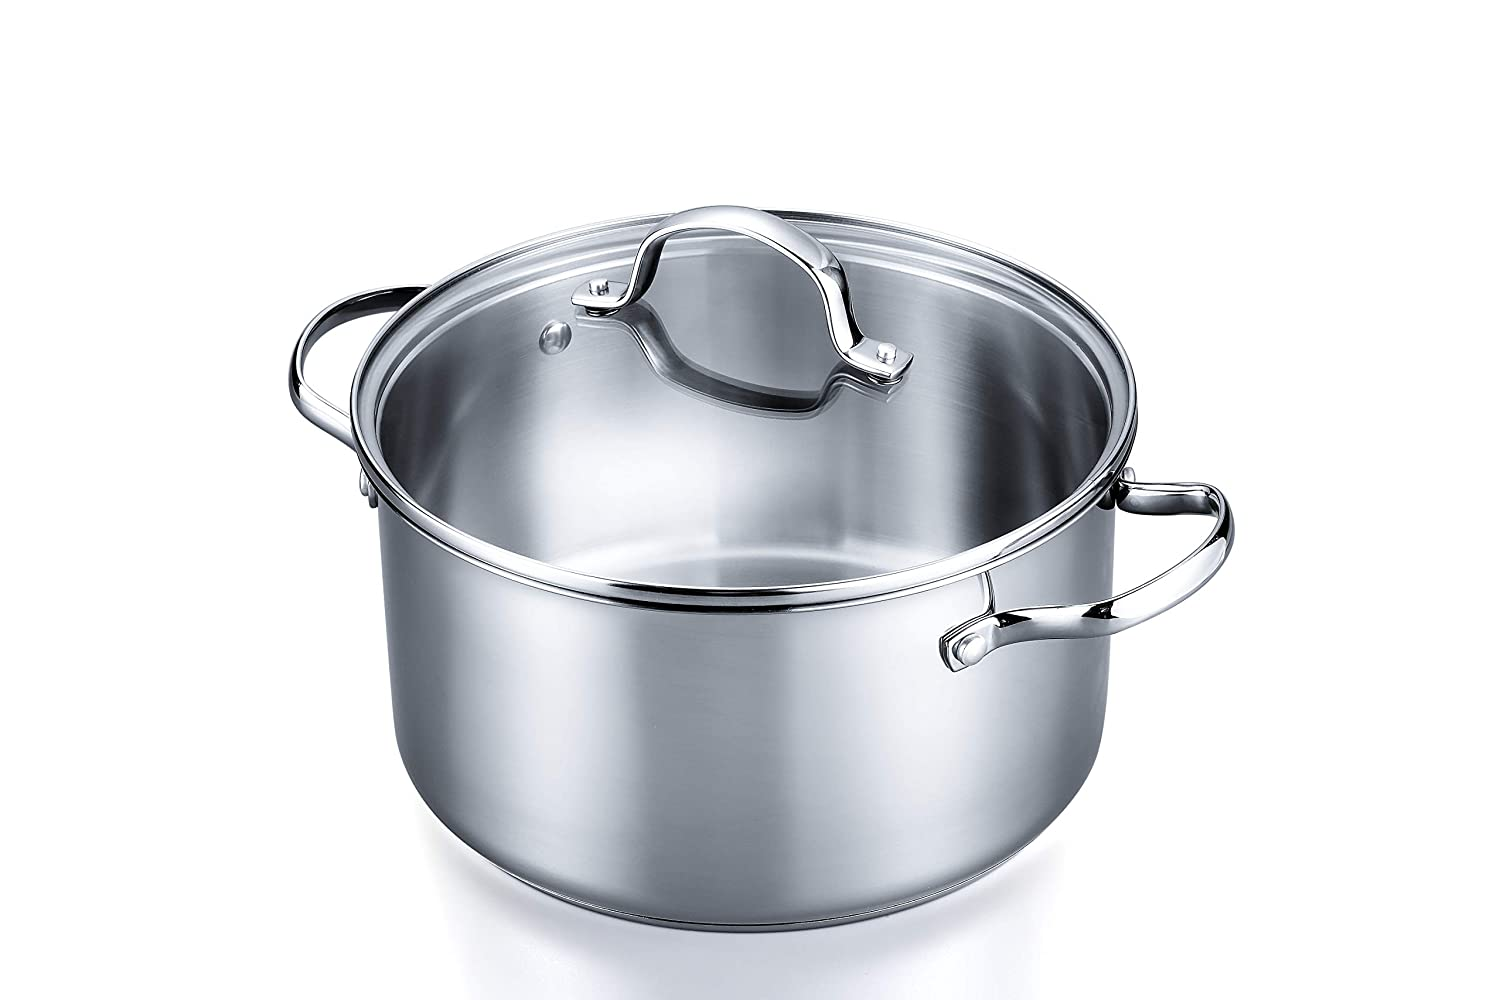 Stovetop Pro Stainless Steel 6 Quart Stockpot and Lid – 24 Cm Diameter - Dishwasher and Oven Safe and Induction Capable – Complementary Addition to Our 3 Pc Starter Set